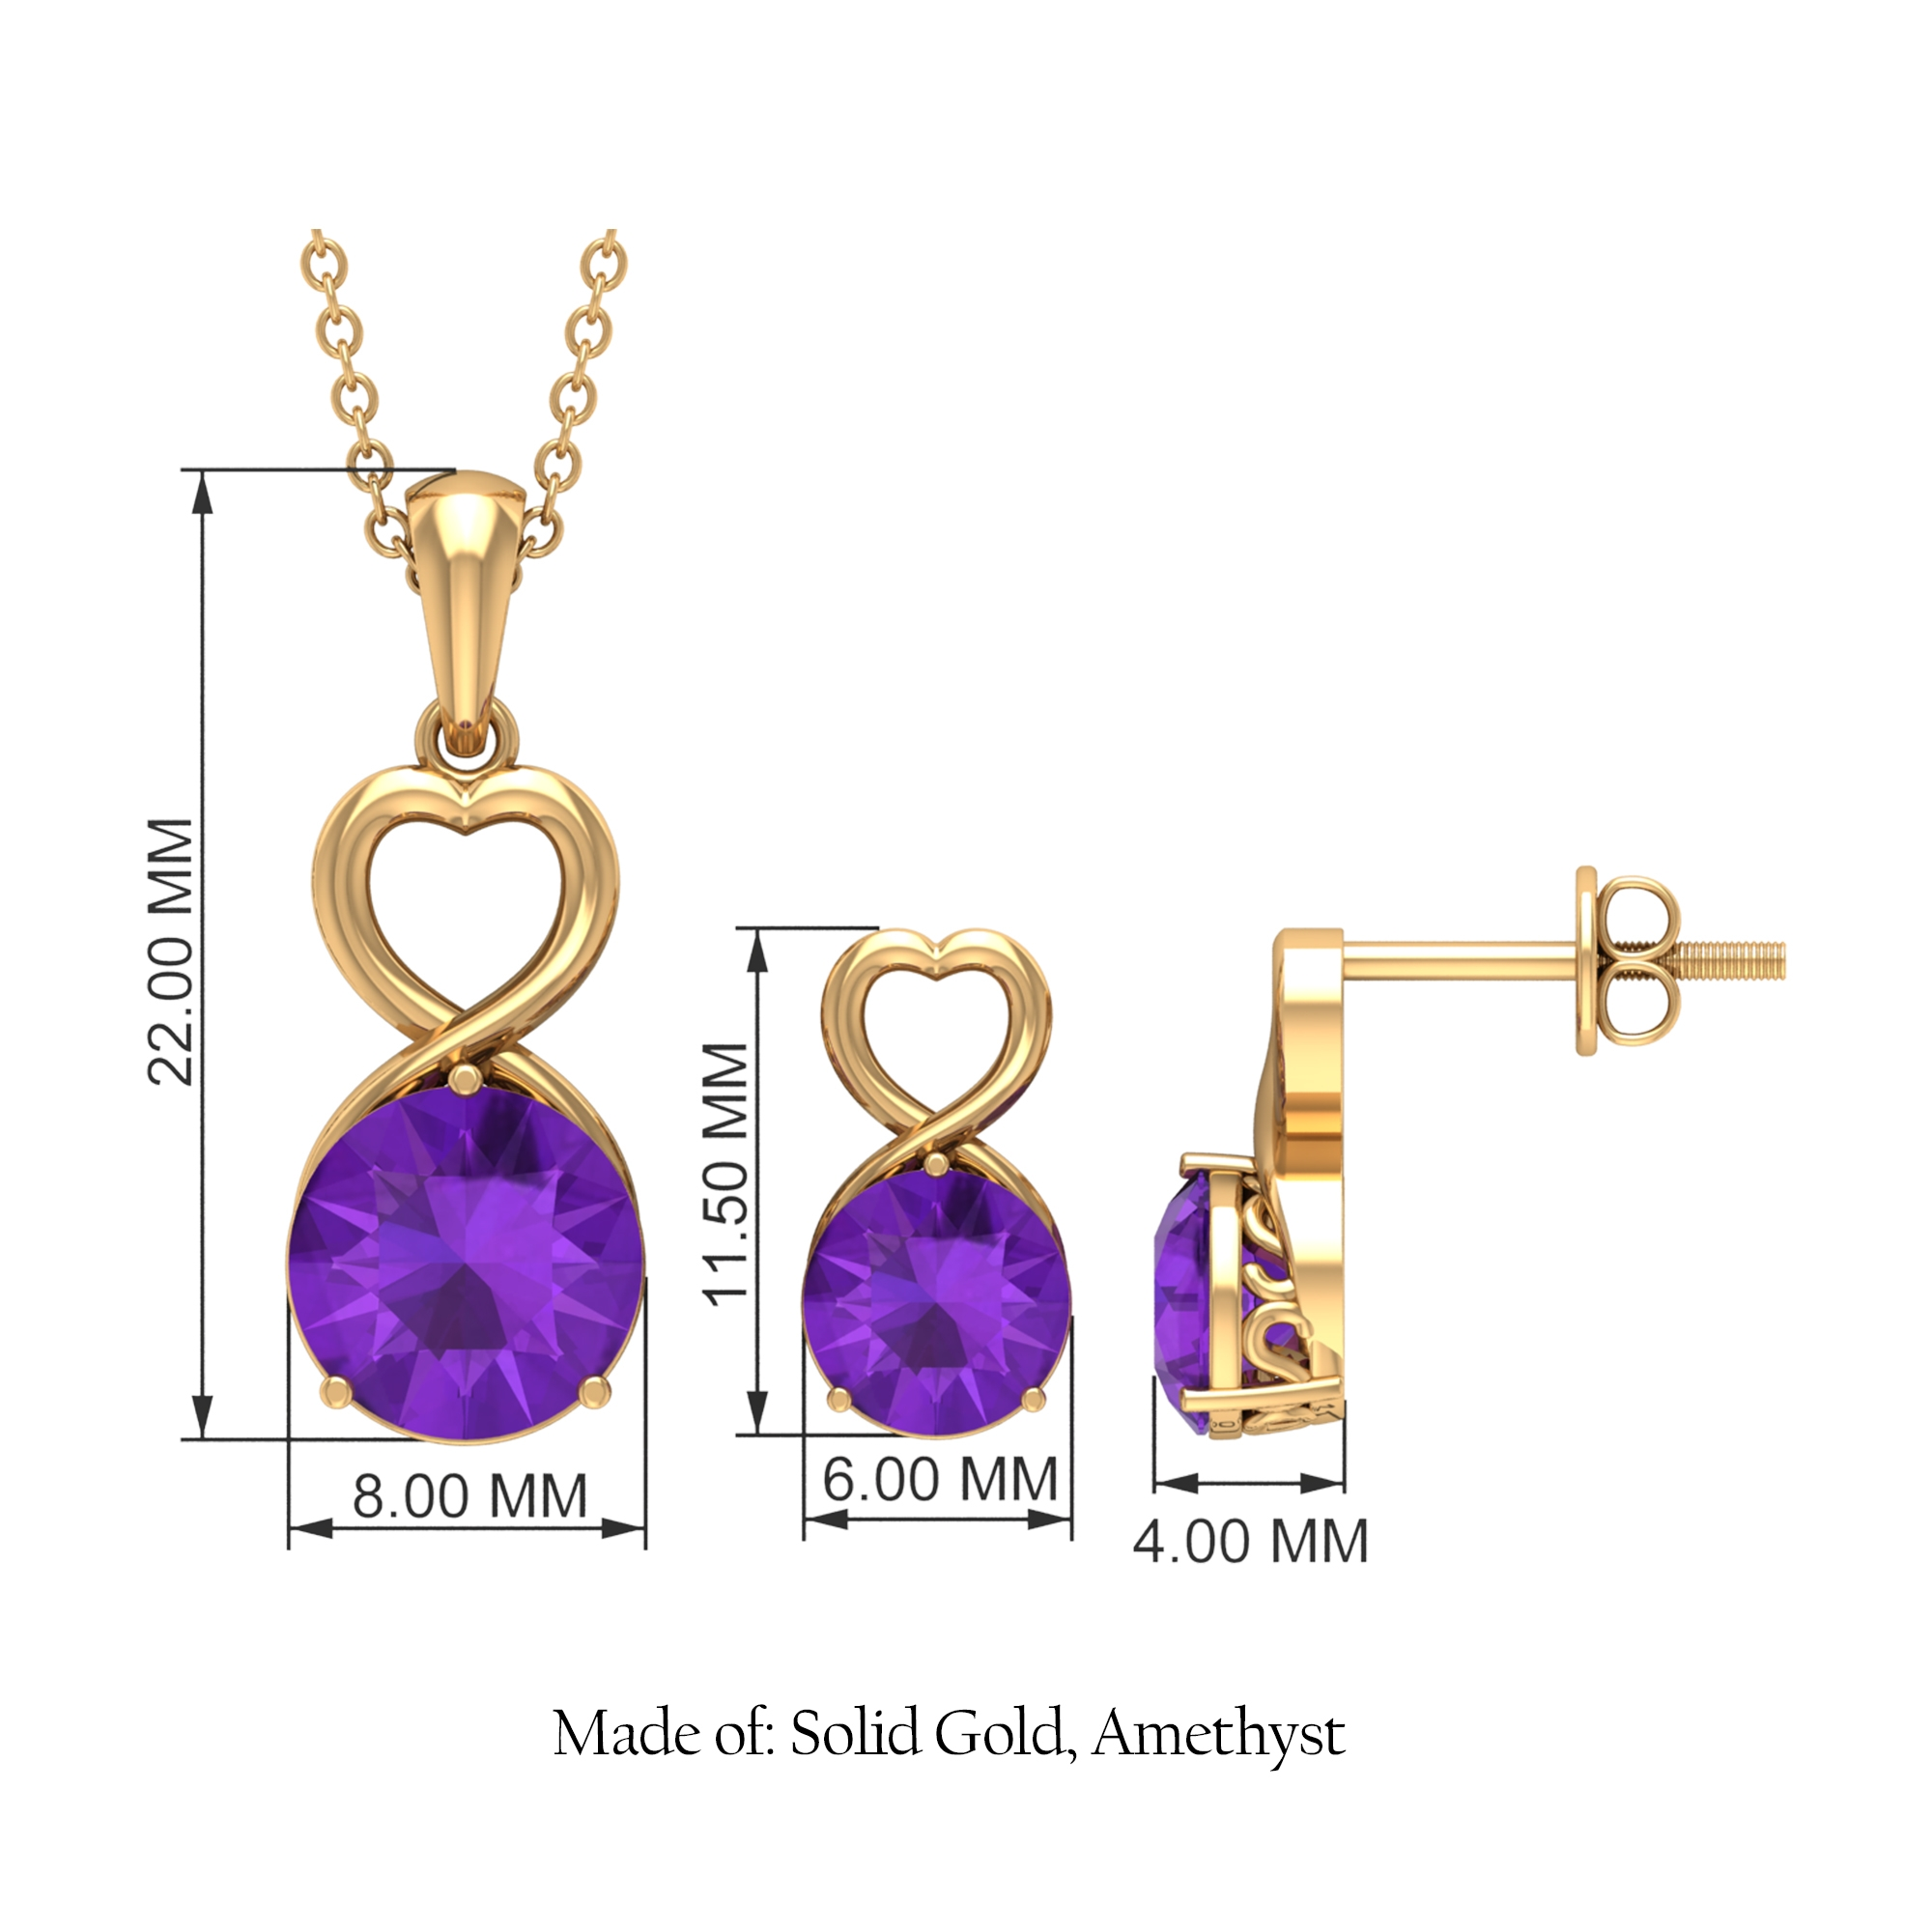 3.25 CT Amethyst Solitaire Gold Heart Shape Jewelry set